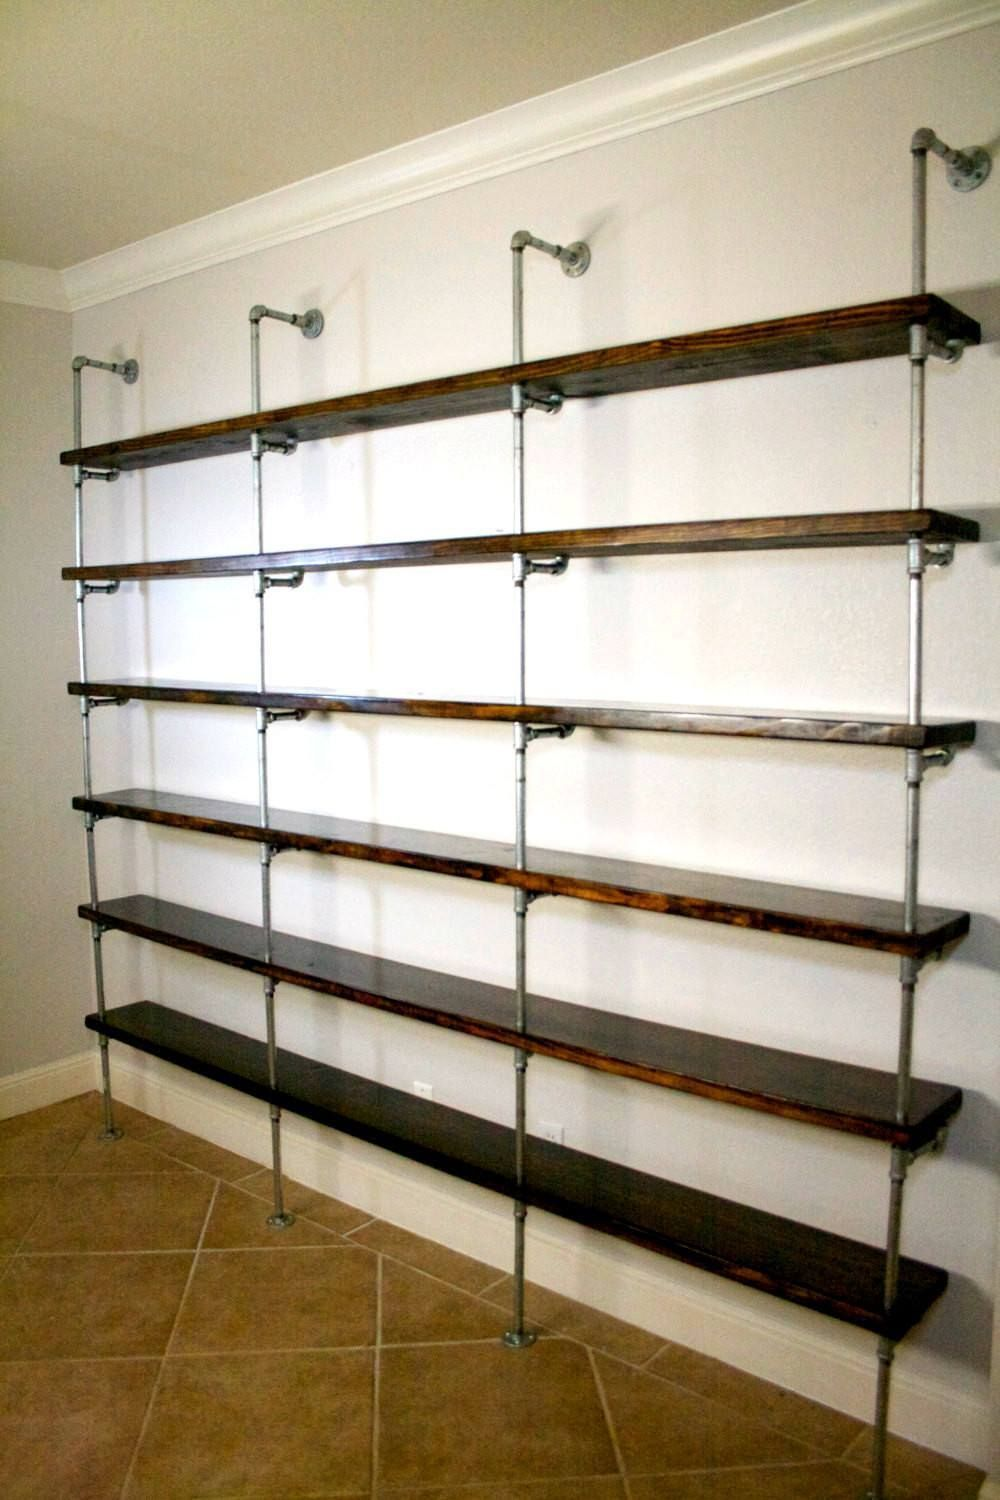 Industrial Shelving Unit   Industrial Office Furniture   Office Shelving    Urban Pipe Shelving   Metal And Wood Shelving   Industrial Shelf